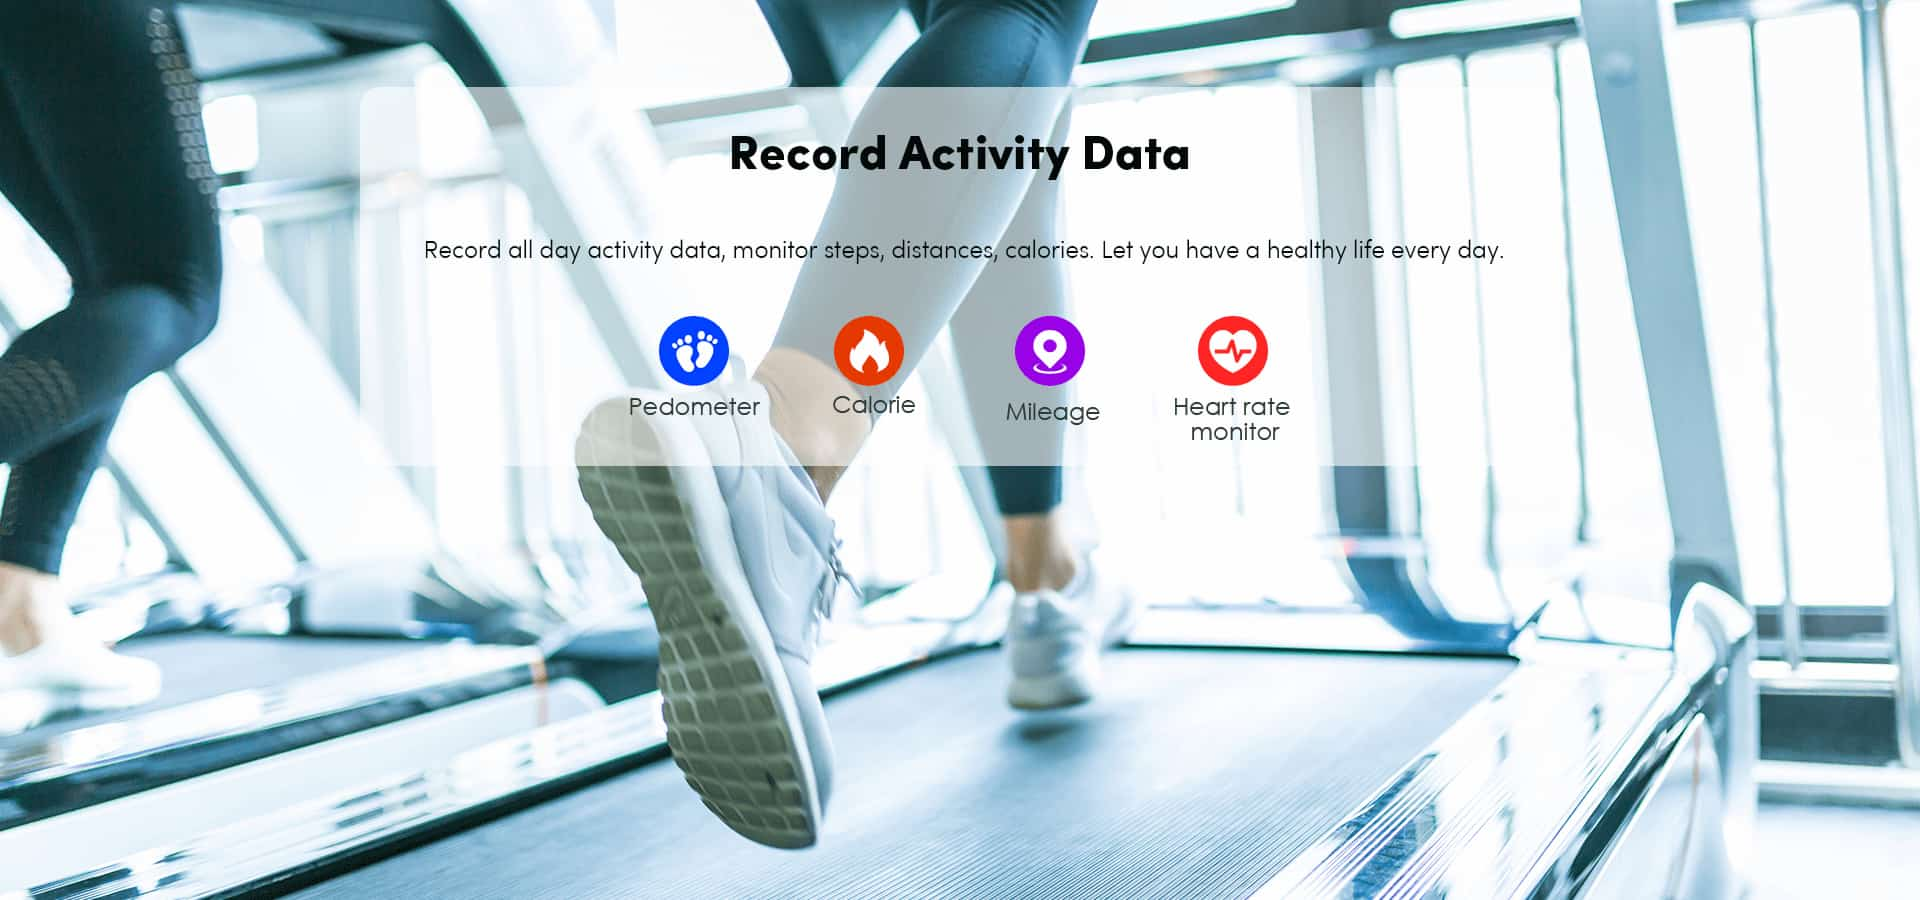 Record Activity Data